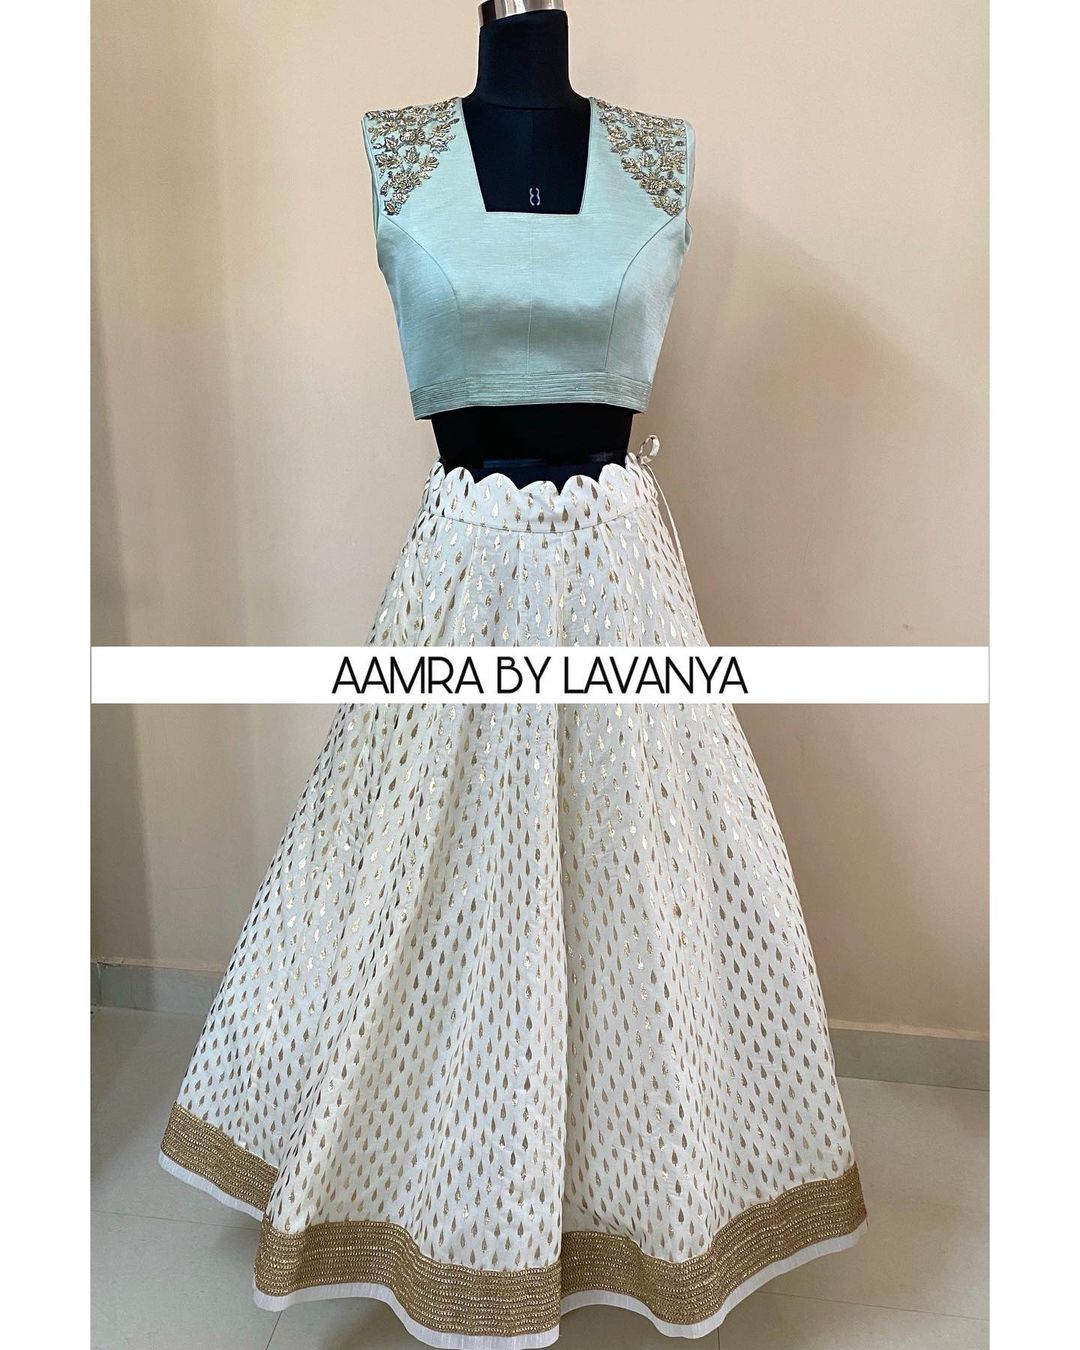 Halfwhite lehenga paired with an intricately hand embroidered iceblue glass neck croptop blouse.